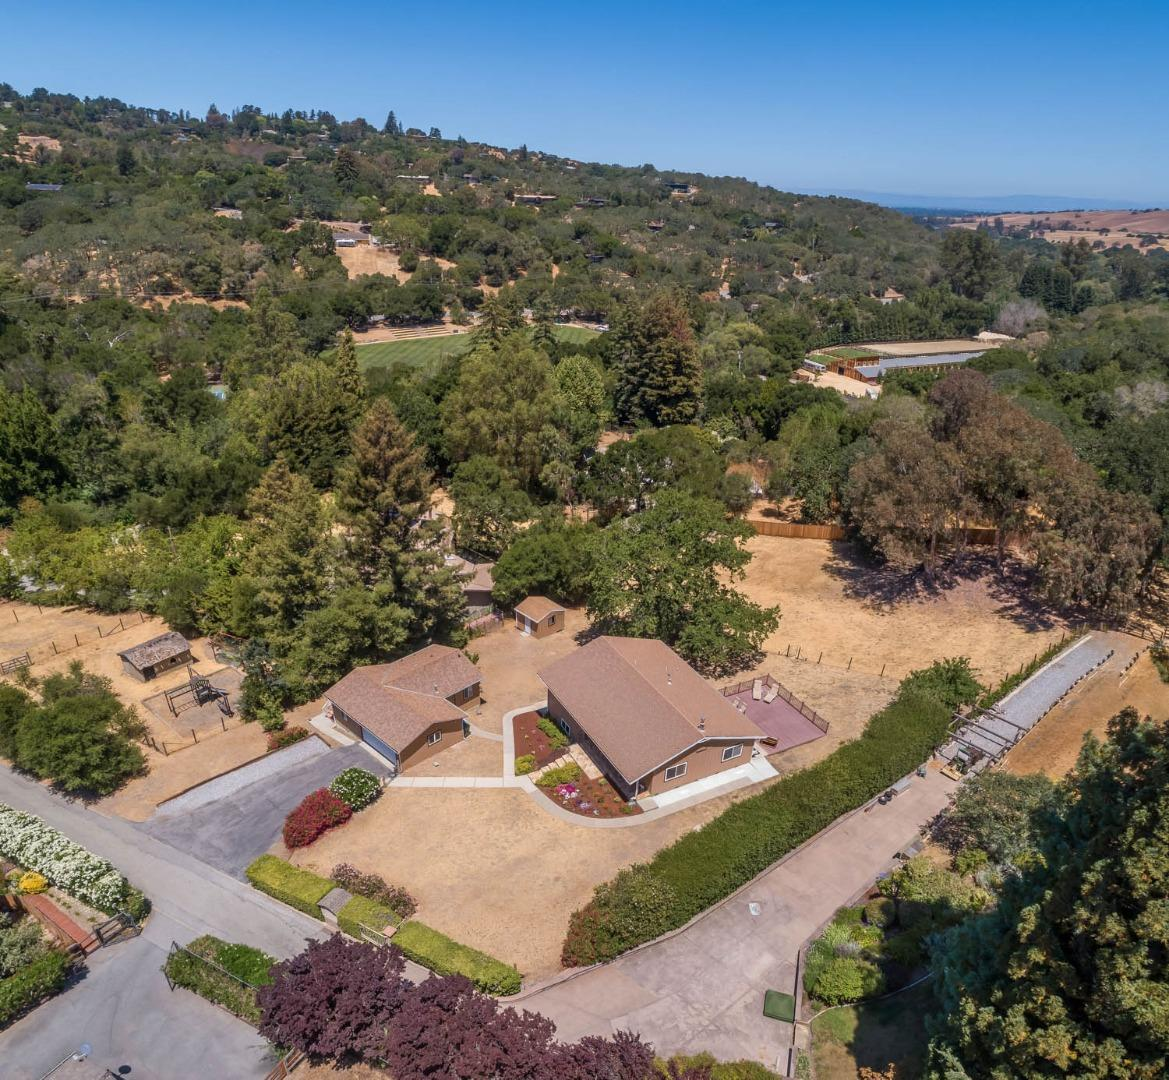 Tucked away on one acre (per county) in desirable Portola Valley, this 2-bedroom, 2-bath home with a guest house/rental unit offers privacy and comfortable living. The mostly level property is fully fenced with views of Windy Hill and an abundance of outdoor space including an area suitable for horses. The main level includes the spacious living room that connects seamlessly to the airy kitchen. A large deck is accessible from the kitchen making the entire space ideal for indoor and outdoor entertaining. A lower level offers two generous-sized rooms with storage and yard access. The detached garage includes a connected guest house that is perfect for use as a rental unit or visiting guests. Built in 1990, the unit is entered from a private deck and includes a living room, kitchen, stacked washer/dryer, and one bedroom with an en-suite bath. This desirable location is convenient to local shopping and restaurants, hiking trails, highway 280, and Stanford University.